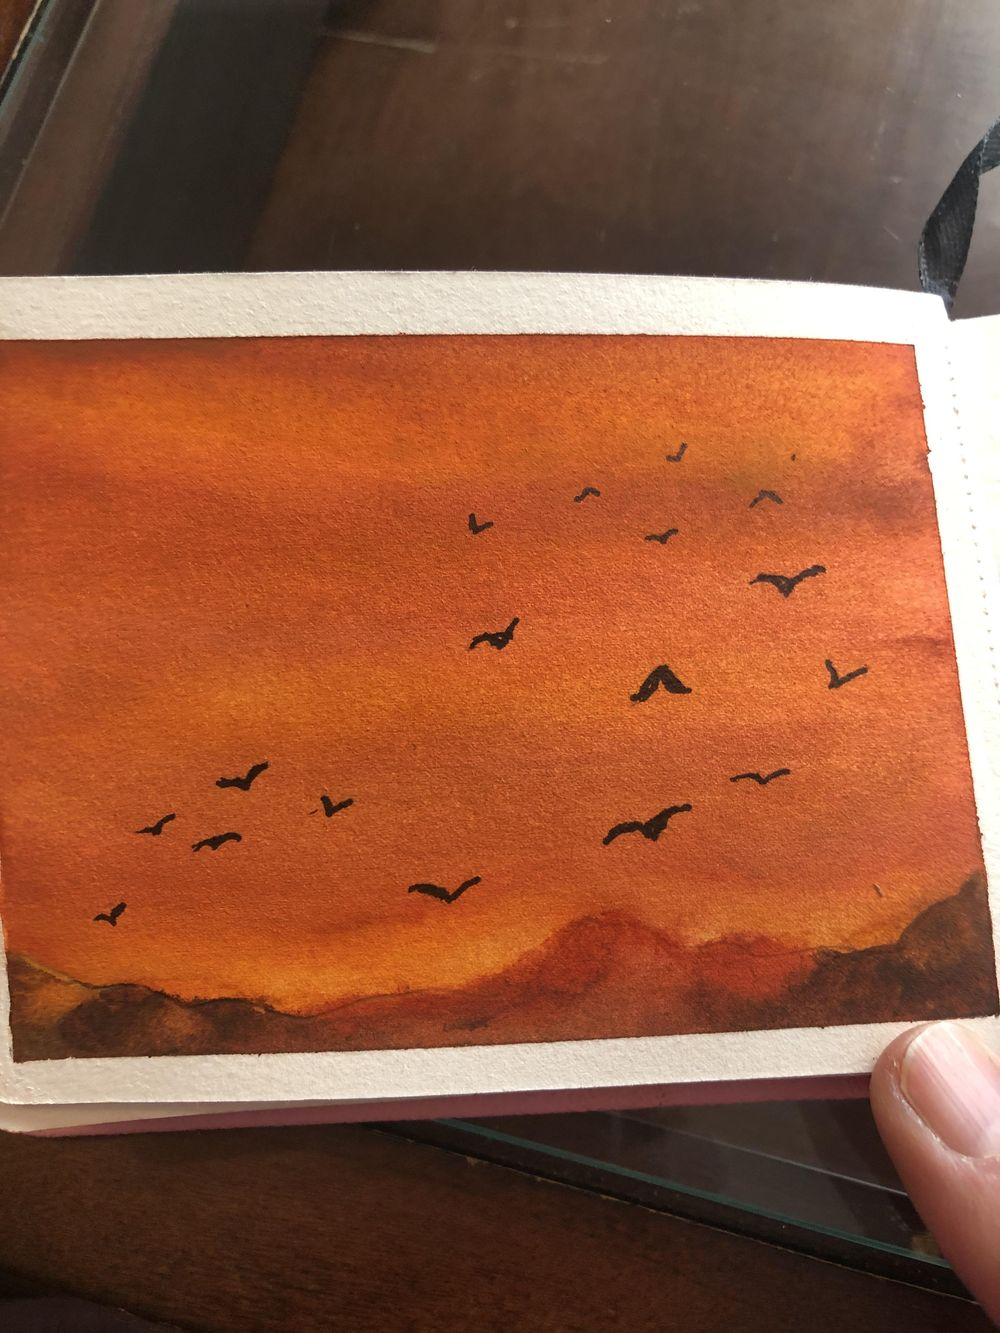 Bird paintings - image 6 - student project